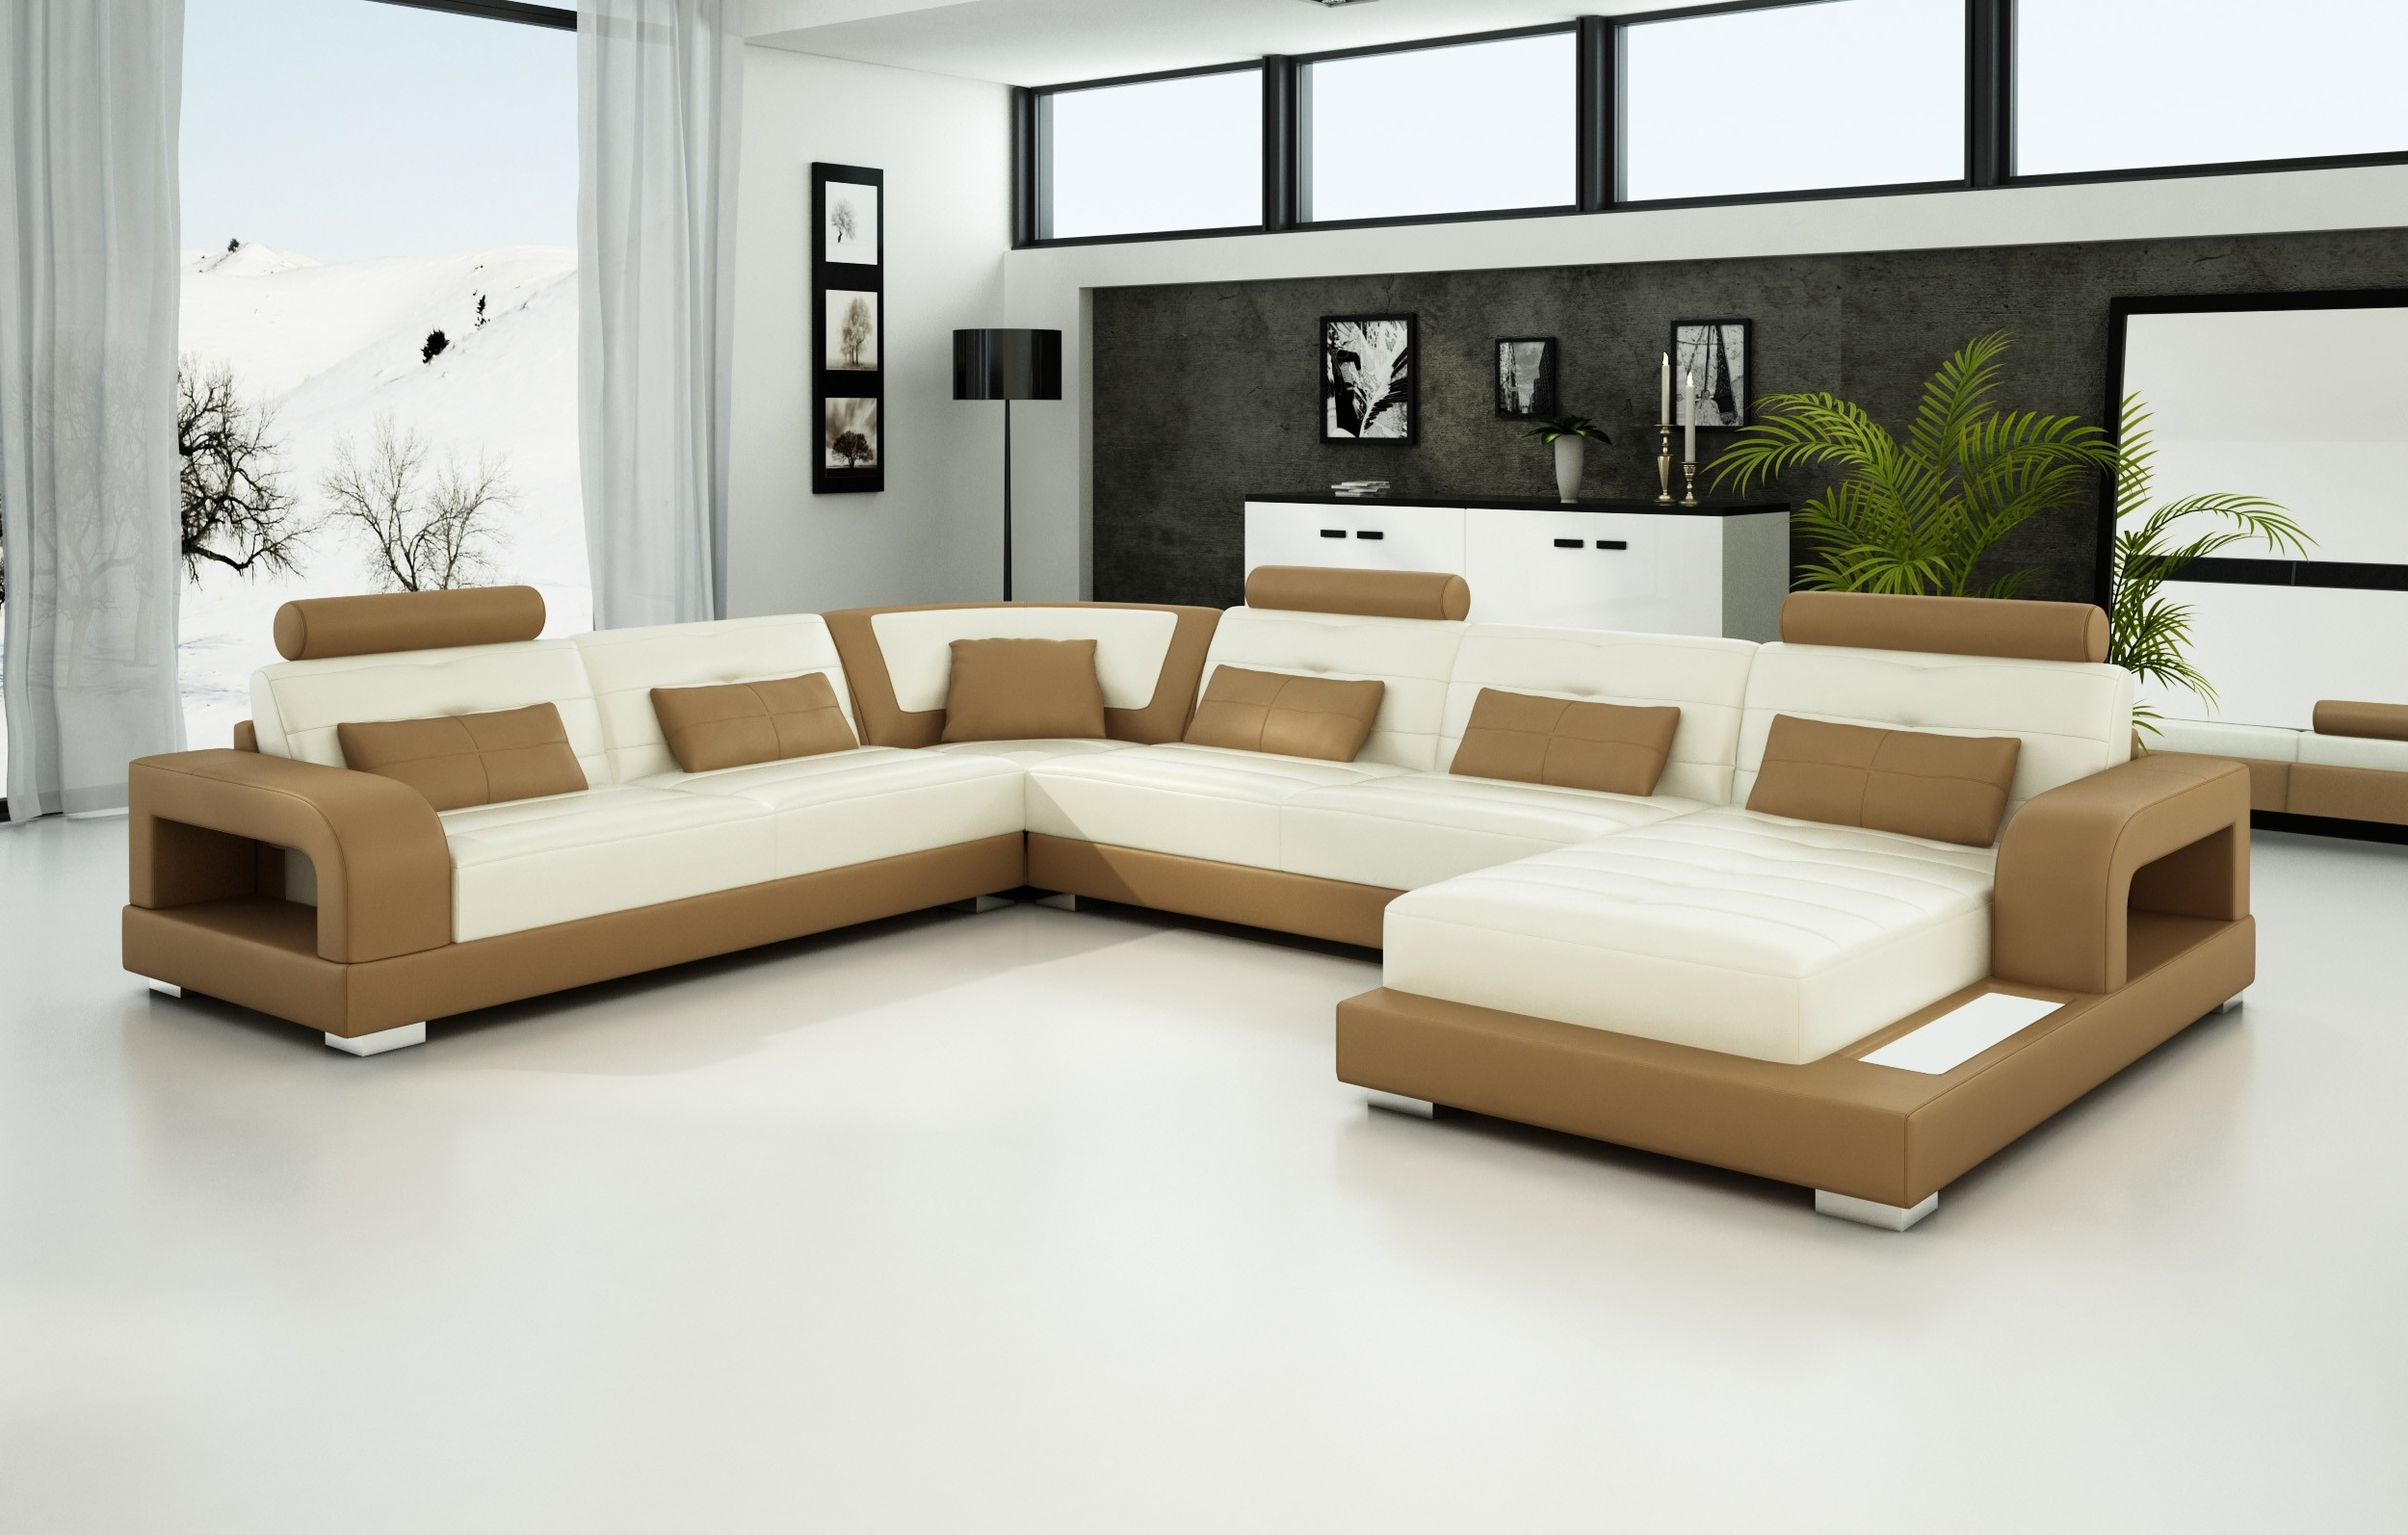 Olympian Sofas Pesaro Light Brown Leather Sofa – Sectional Sofas Intended For Well Known Trinidad And Tobago Sectional Sofas (View 10 of 20)